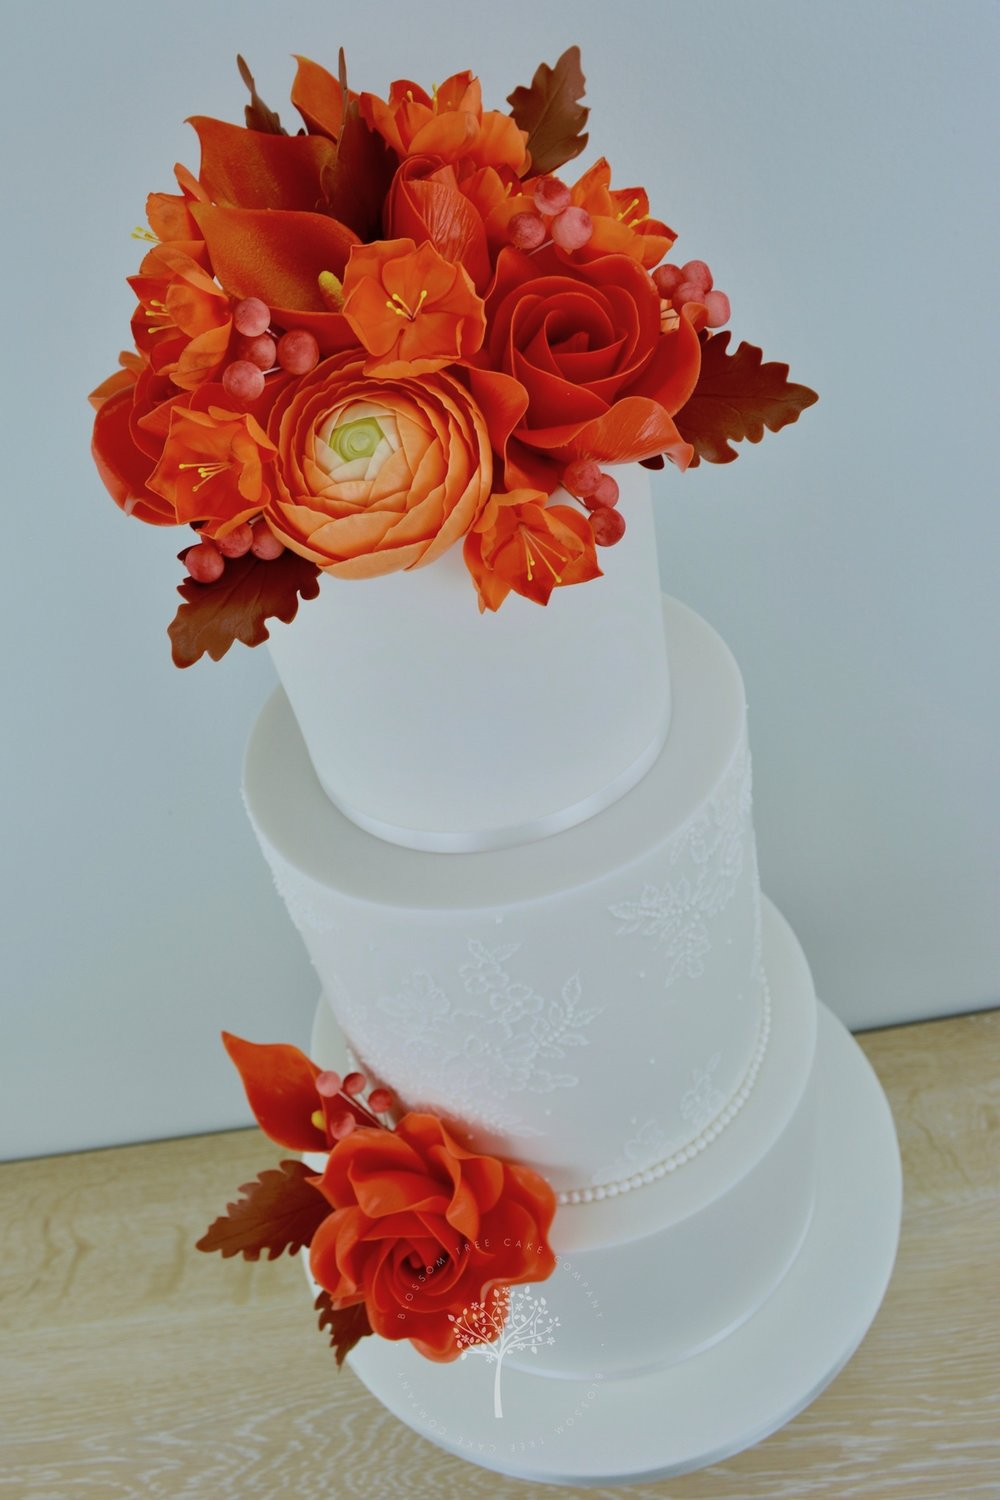 Autumn Lace wedding cake by Blossom Tree Cake Company Harrogate North Yorkshire - angle.jpg